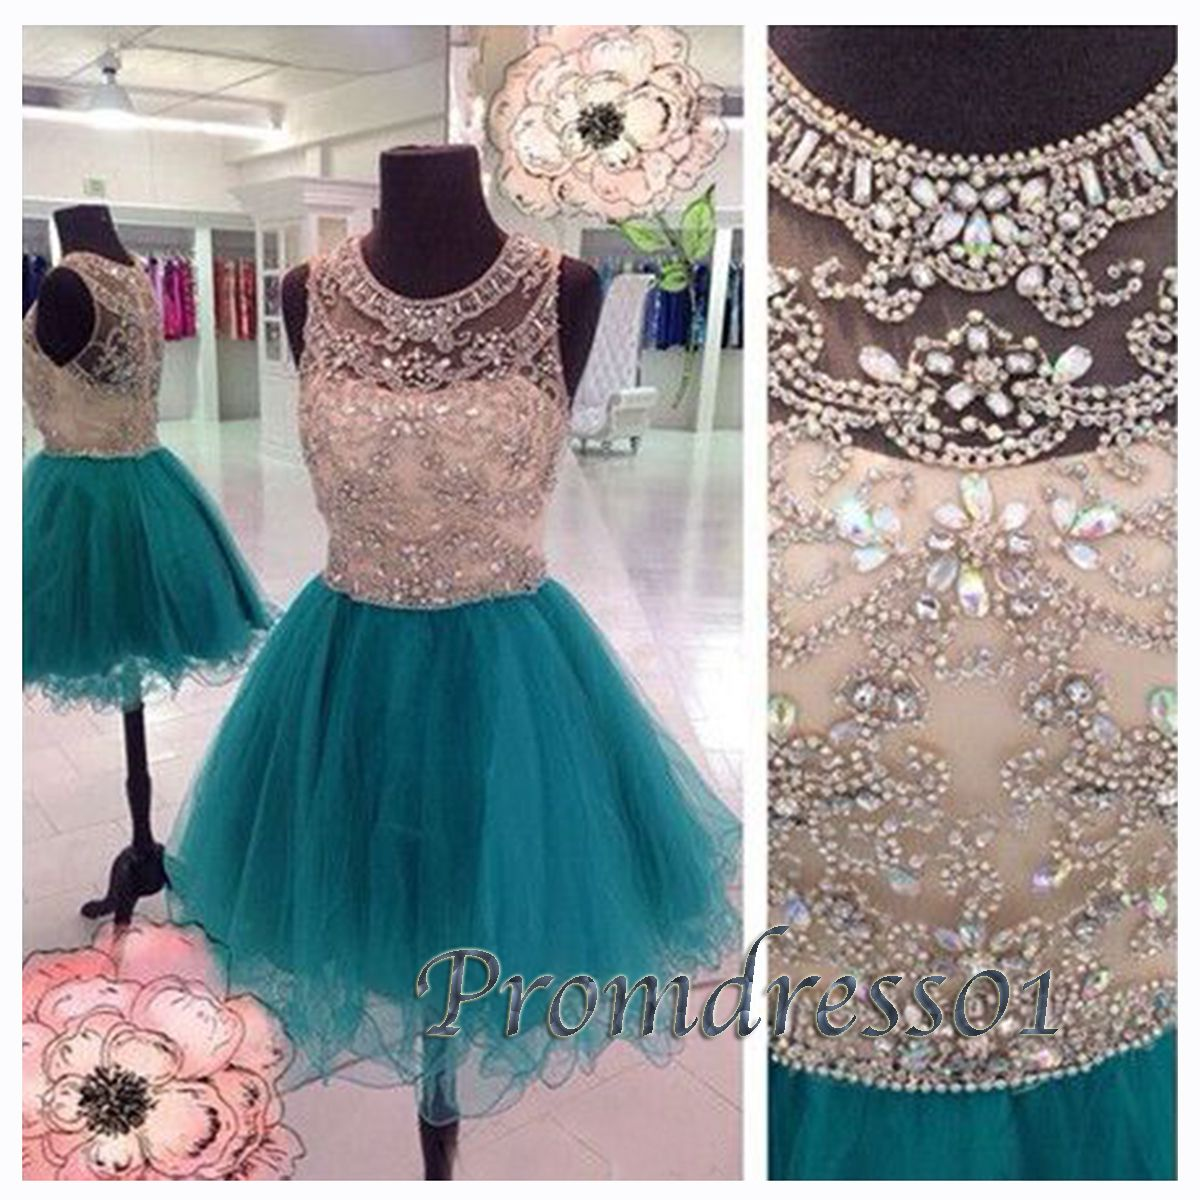 Pin by nicole hodge on homecoming pinterest prom dresses